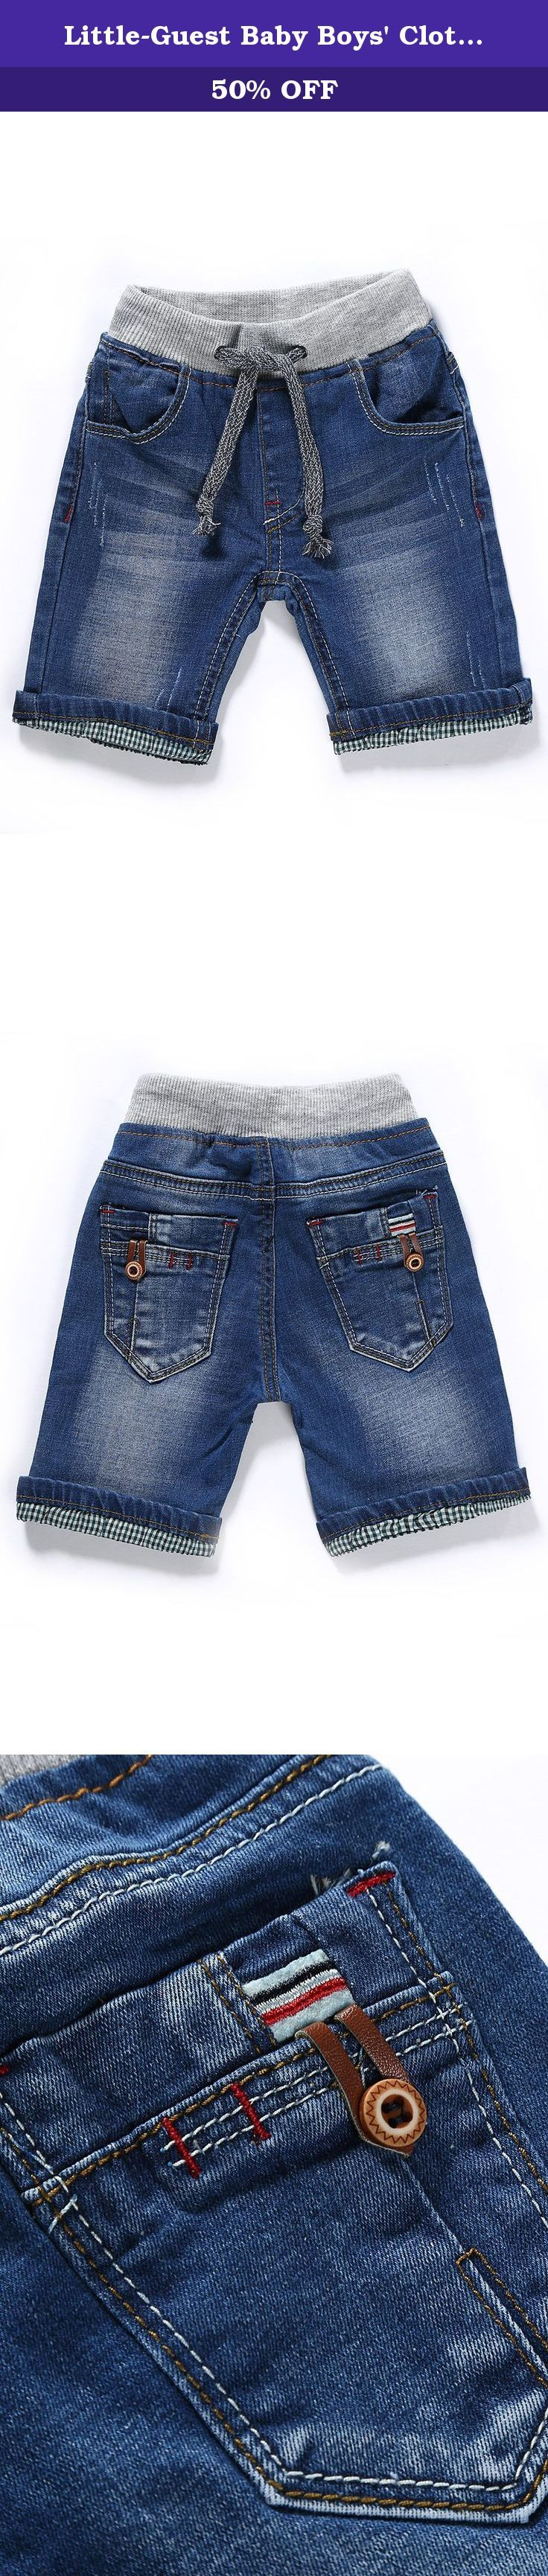 """Little-Guest Baby Boys' Clothes Blue Knee-Length Jeans Shorts B210 (24-30 Months, Light Blue). Pay attention to our Size Chart: 6-9 Months WAIST:48cm/18.7"""" HIP:54cm/21.1"""" BOTTOM:24cm/9.4"""" BODY LENGTH:24cm/9.4"""" 9-12 Months WAIST:50cm/19.5"""" HIP:56cm/21.8"""" BOTTOM:25cm/9.8"""" BODY LENGTH:25cm/9.8"""" 12-18 Months WAIST:53cm/20.7"""" HIP:59cm/23"""" BOTTOM:26.5cm/10.3"""" BODY LENGTH:26.5cm/10.3"""" 18-24 Months WAIST:54cm/21.1"""" HIP:60cm/23.4"""" BOTTOM:27cm/10.5"""" BODY LENGTH:27cm/10.5"""" 24-30 Months…"""